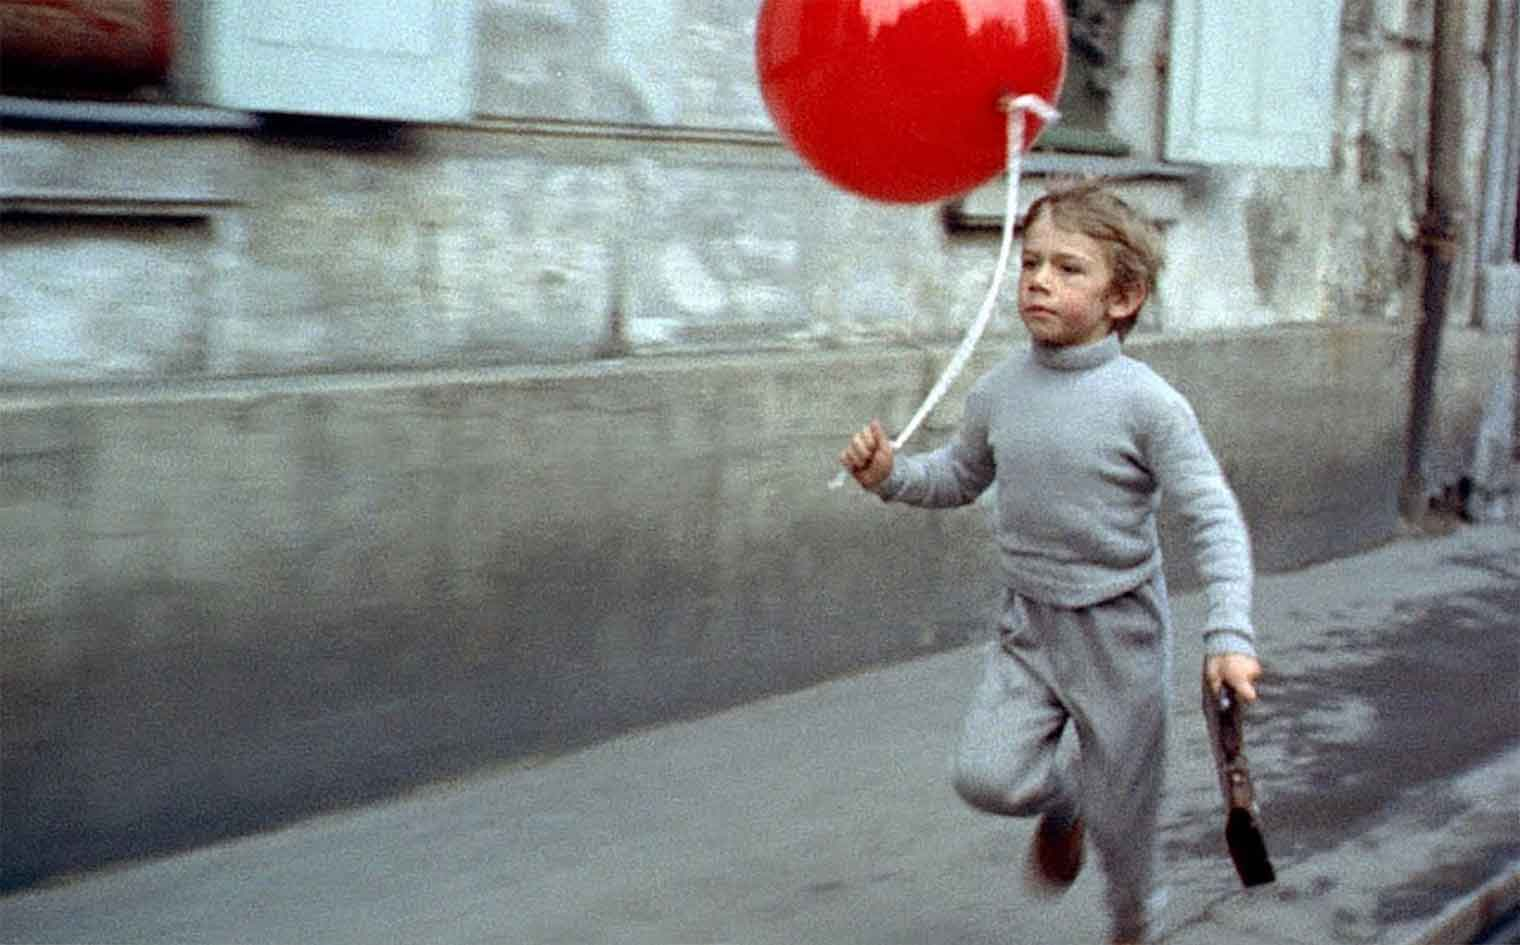 THE RED BALLOON AND A DOG'S LIFE